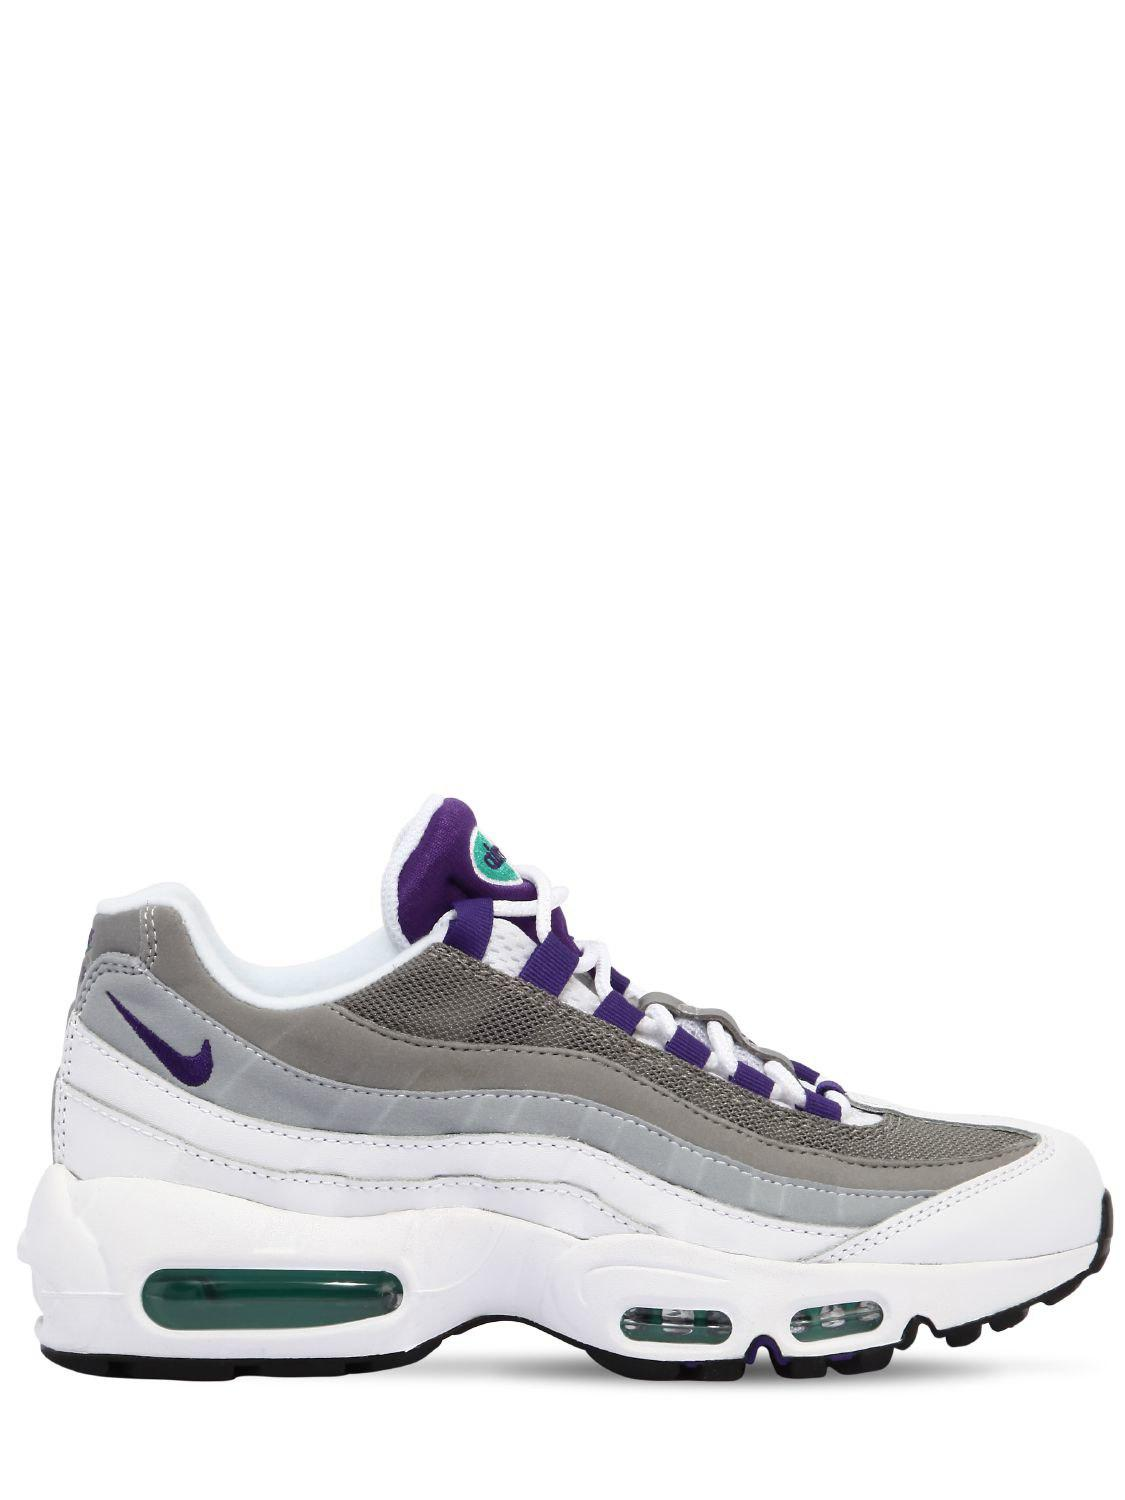 official photos a8d1f f1c80 order lyst in nike air max 95 sneakers in lyst lilla 3f31b5 e200d f166e